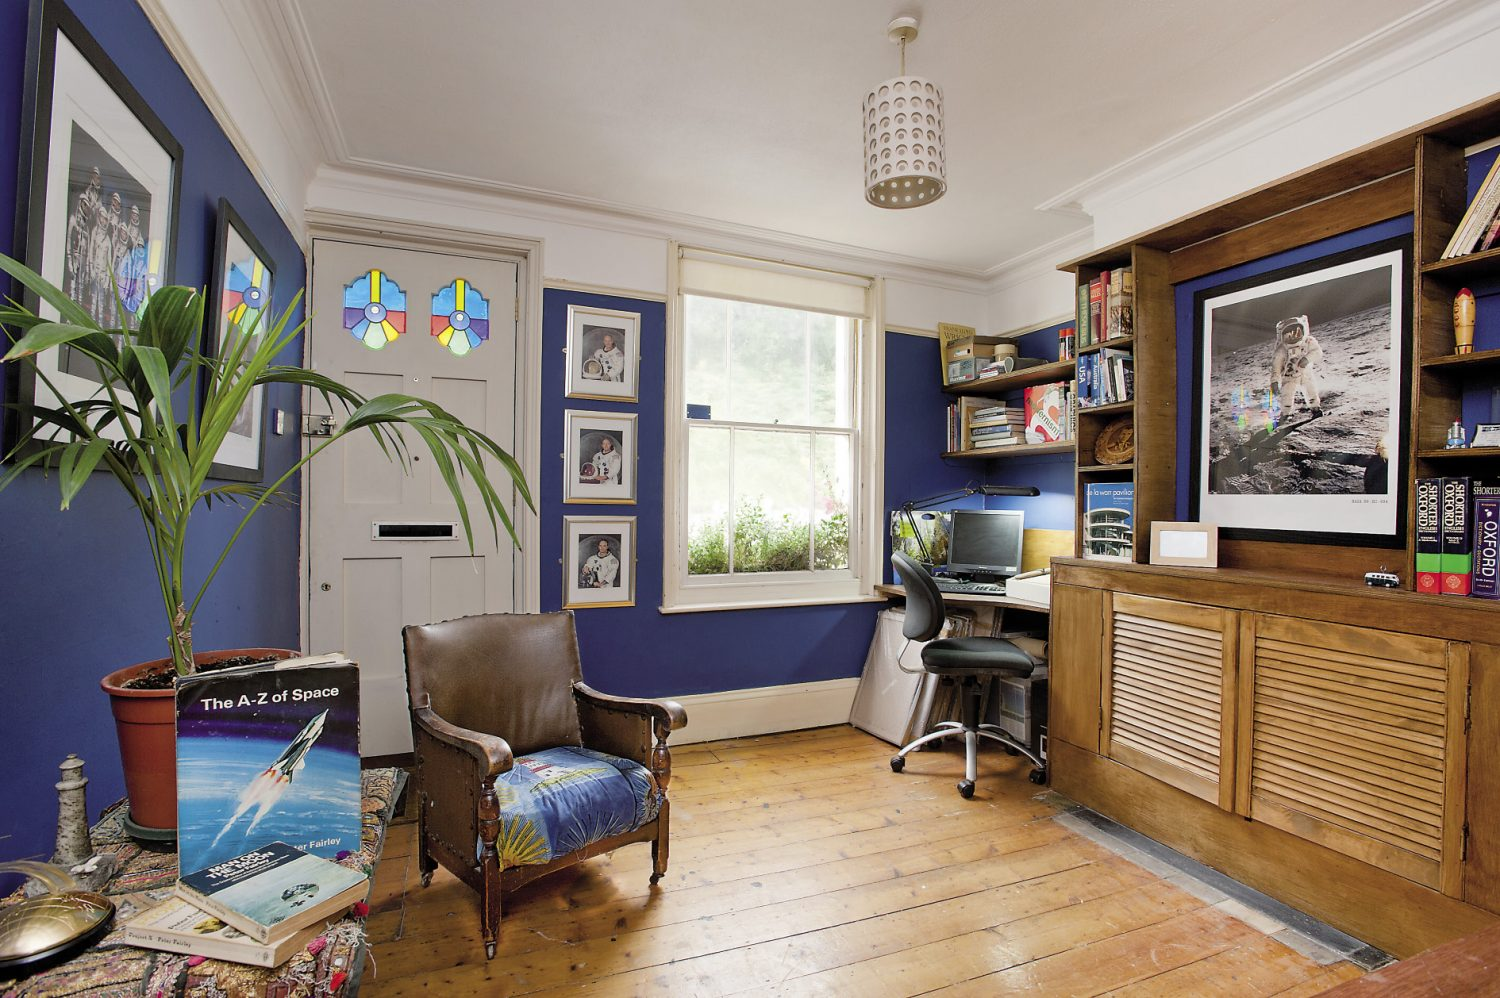 In the study, Alastair has constructed his own bespoke desks and bookshelves and the dark blue walls are covered in photographs from America's space missions of the 1960s and 70s